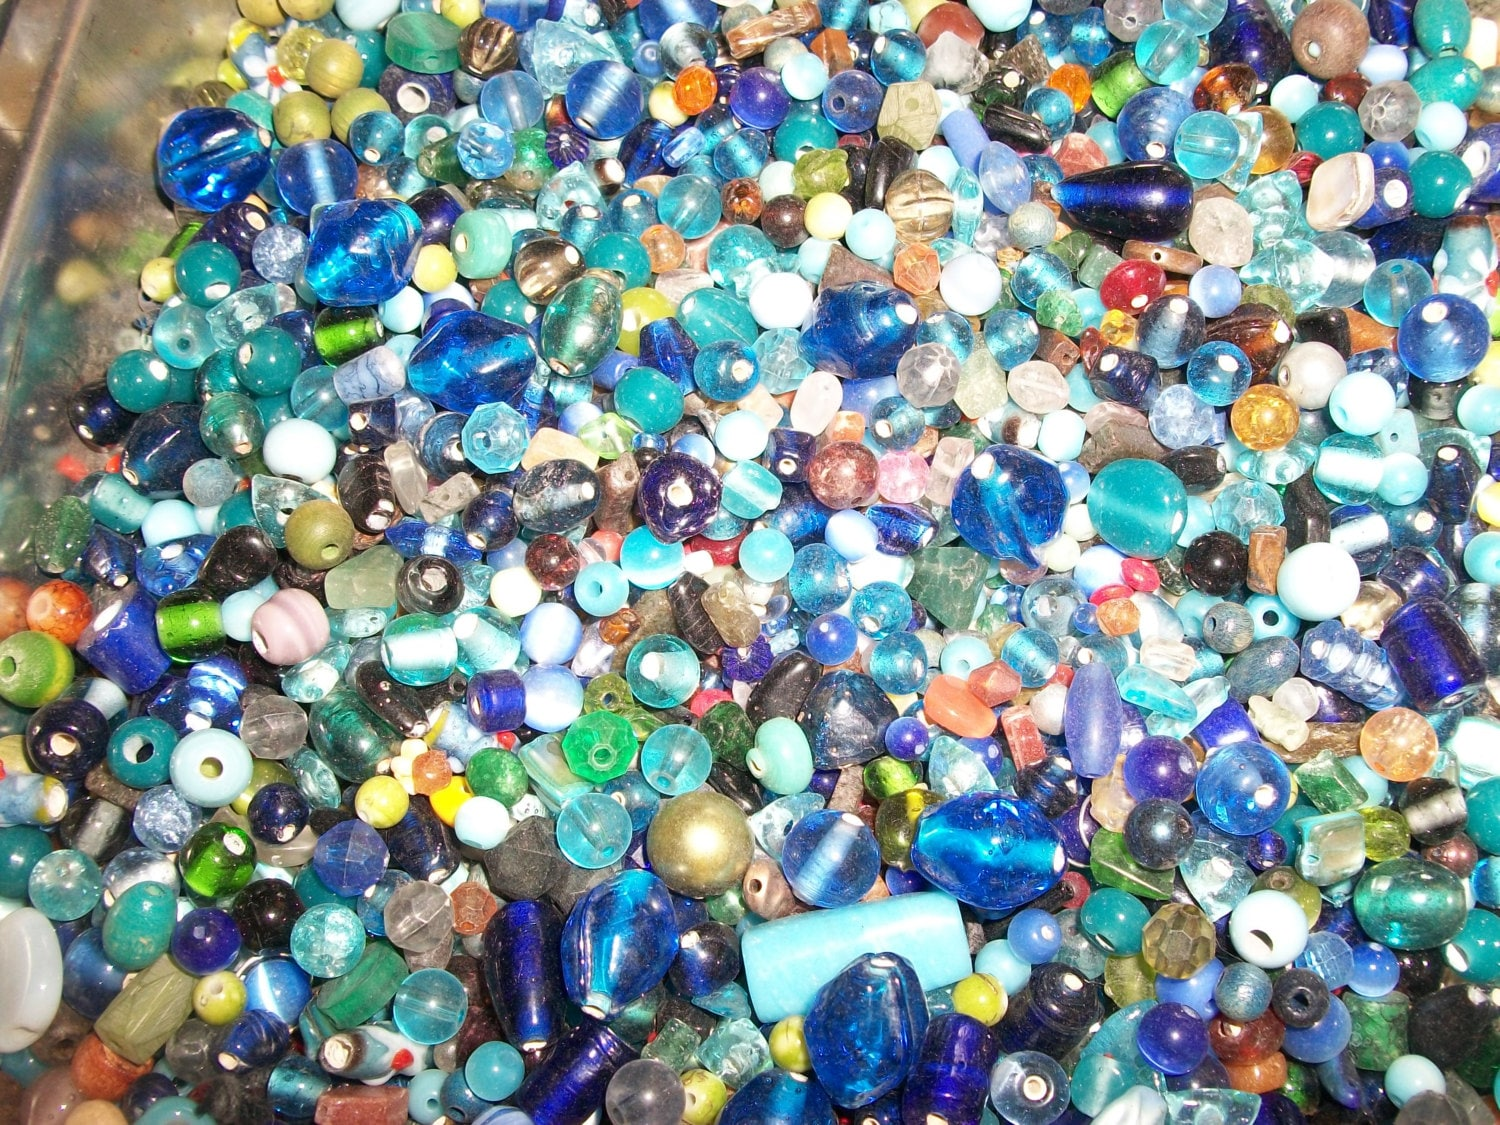 in mixed pendant colors buy blue glass jewelry ebay beach us decor en bulk sea beads green